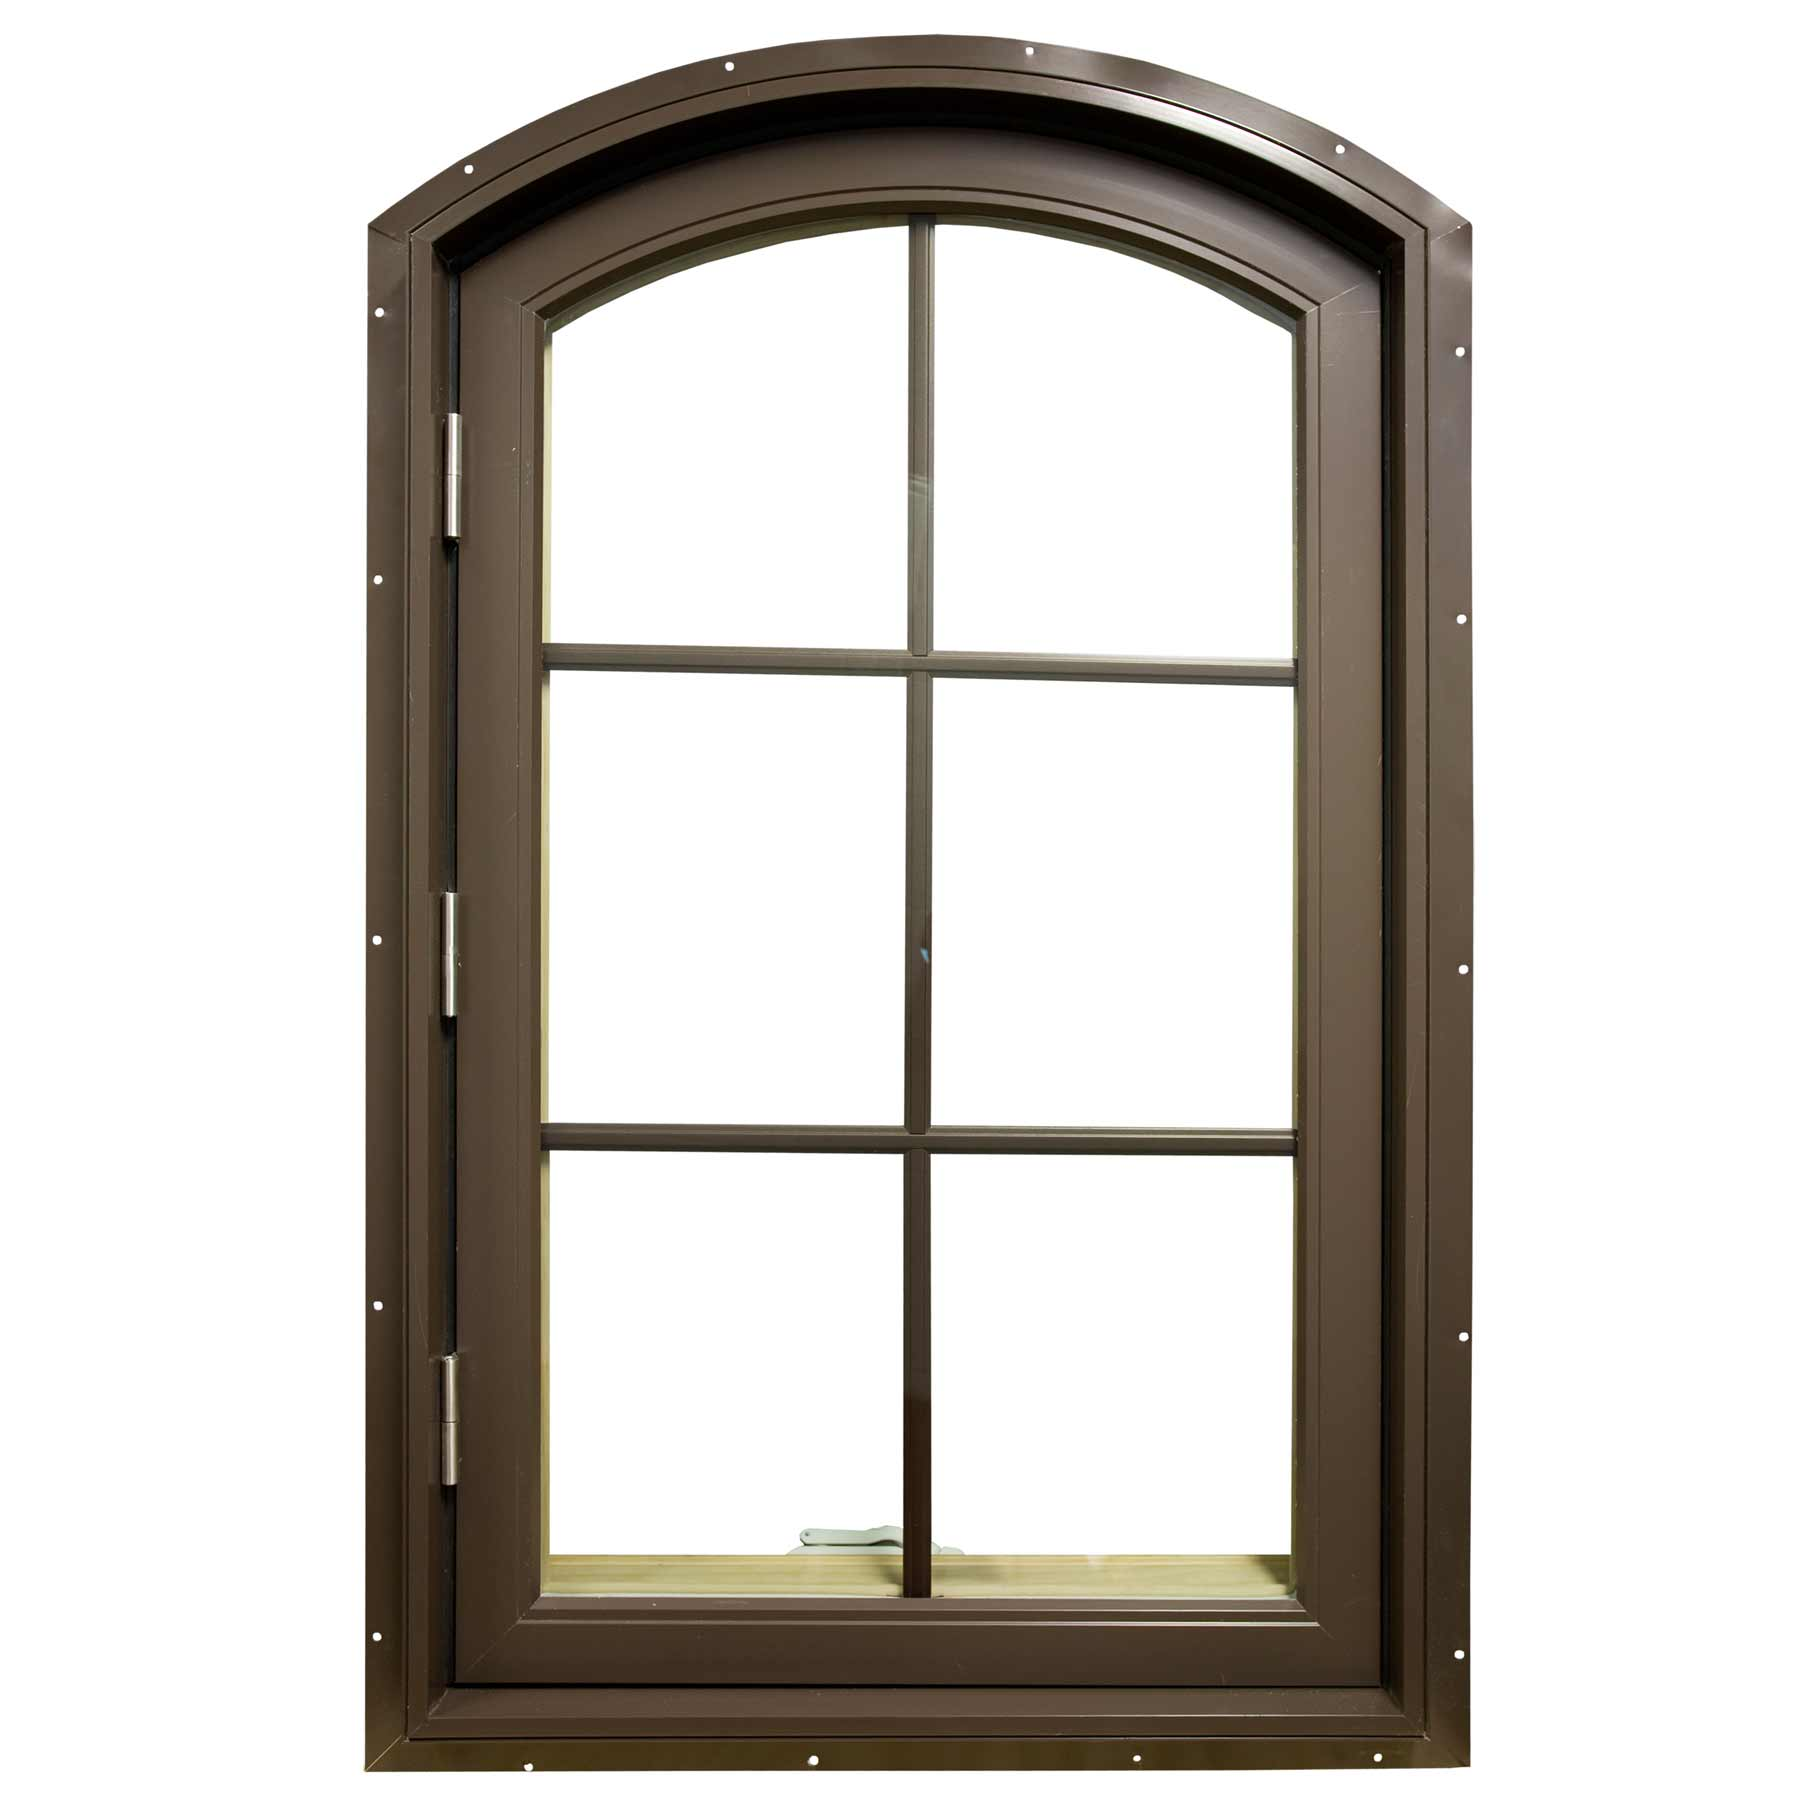 Aluminum casement windows for home for Windows for your home